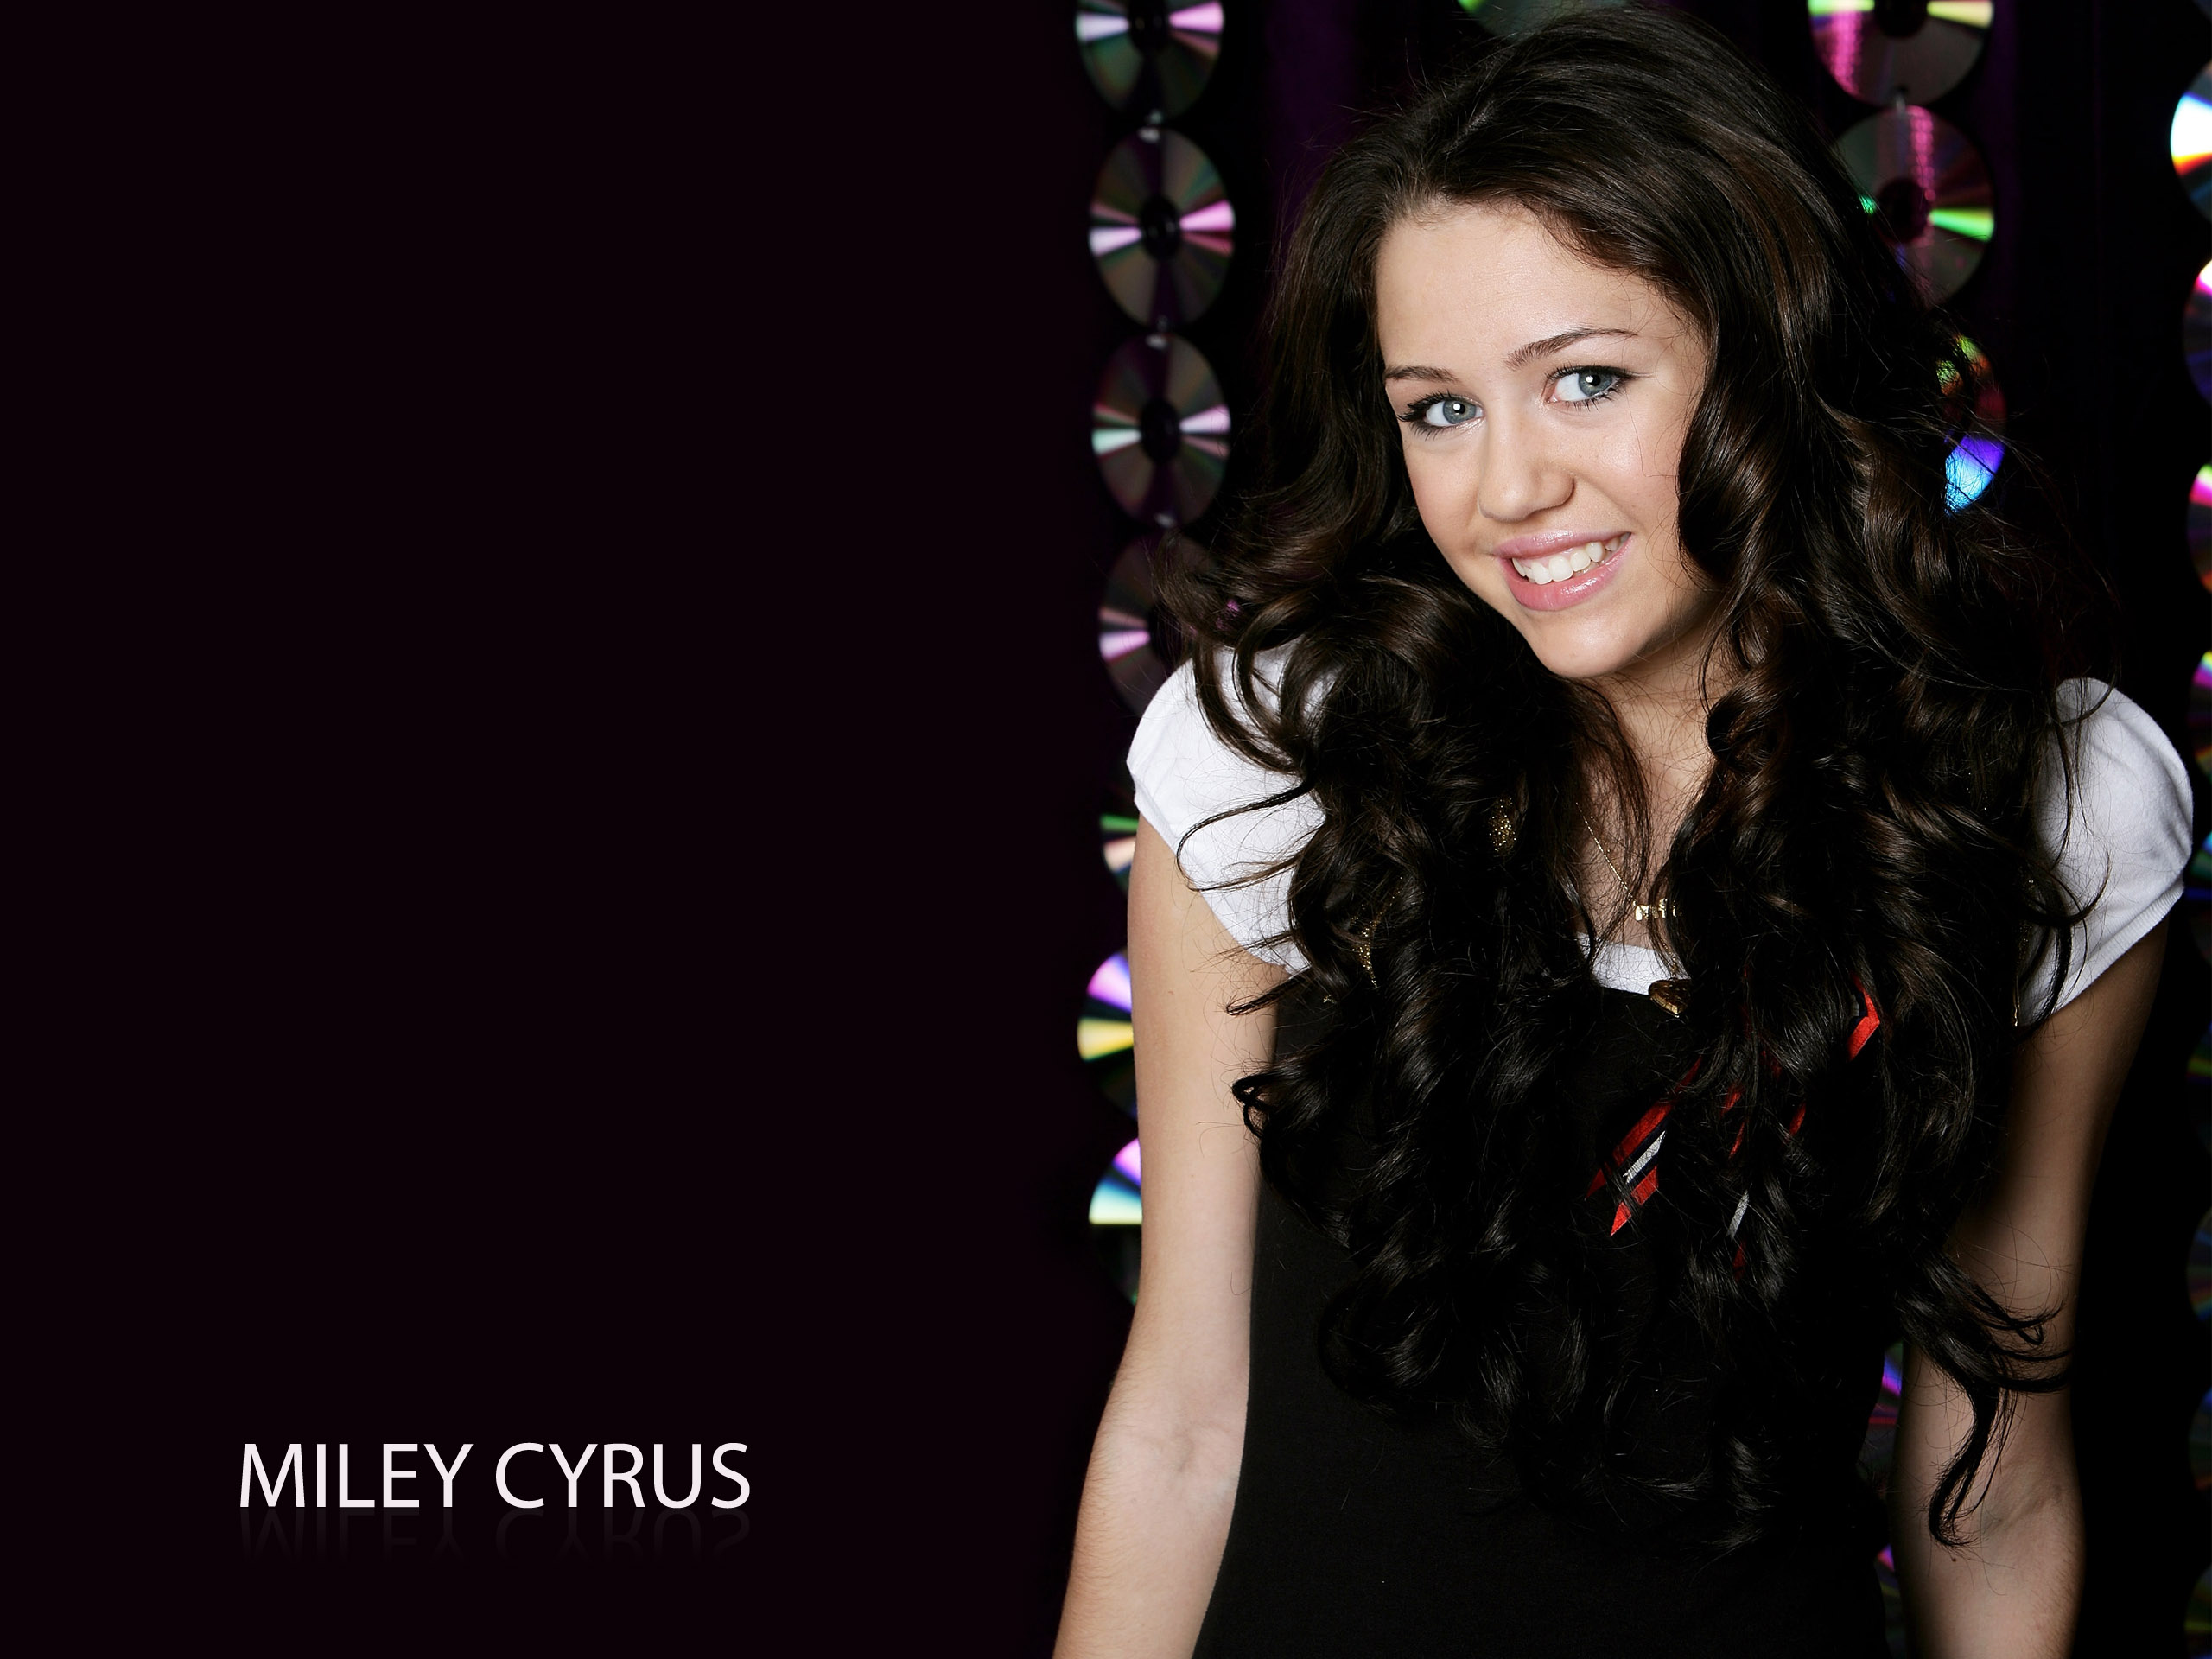 Miley Cyrus Wallpaper Miley Cyrus Wallpaper0 Miley Cyrus Wallpaper1 Miley Cyrus Wallpaper2 ...